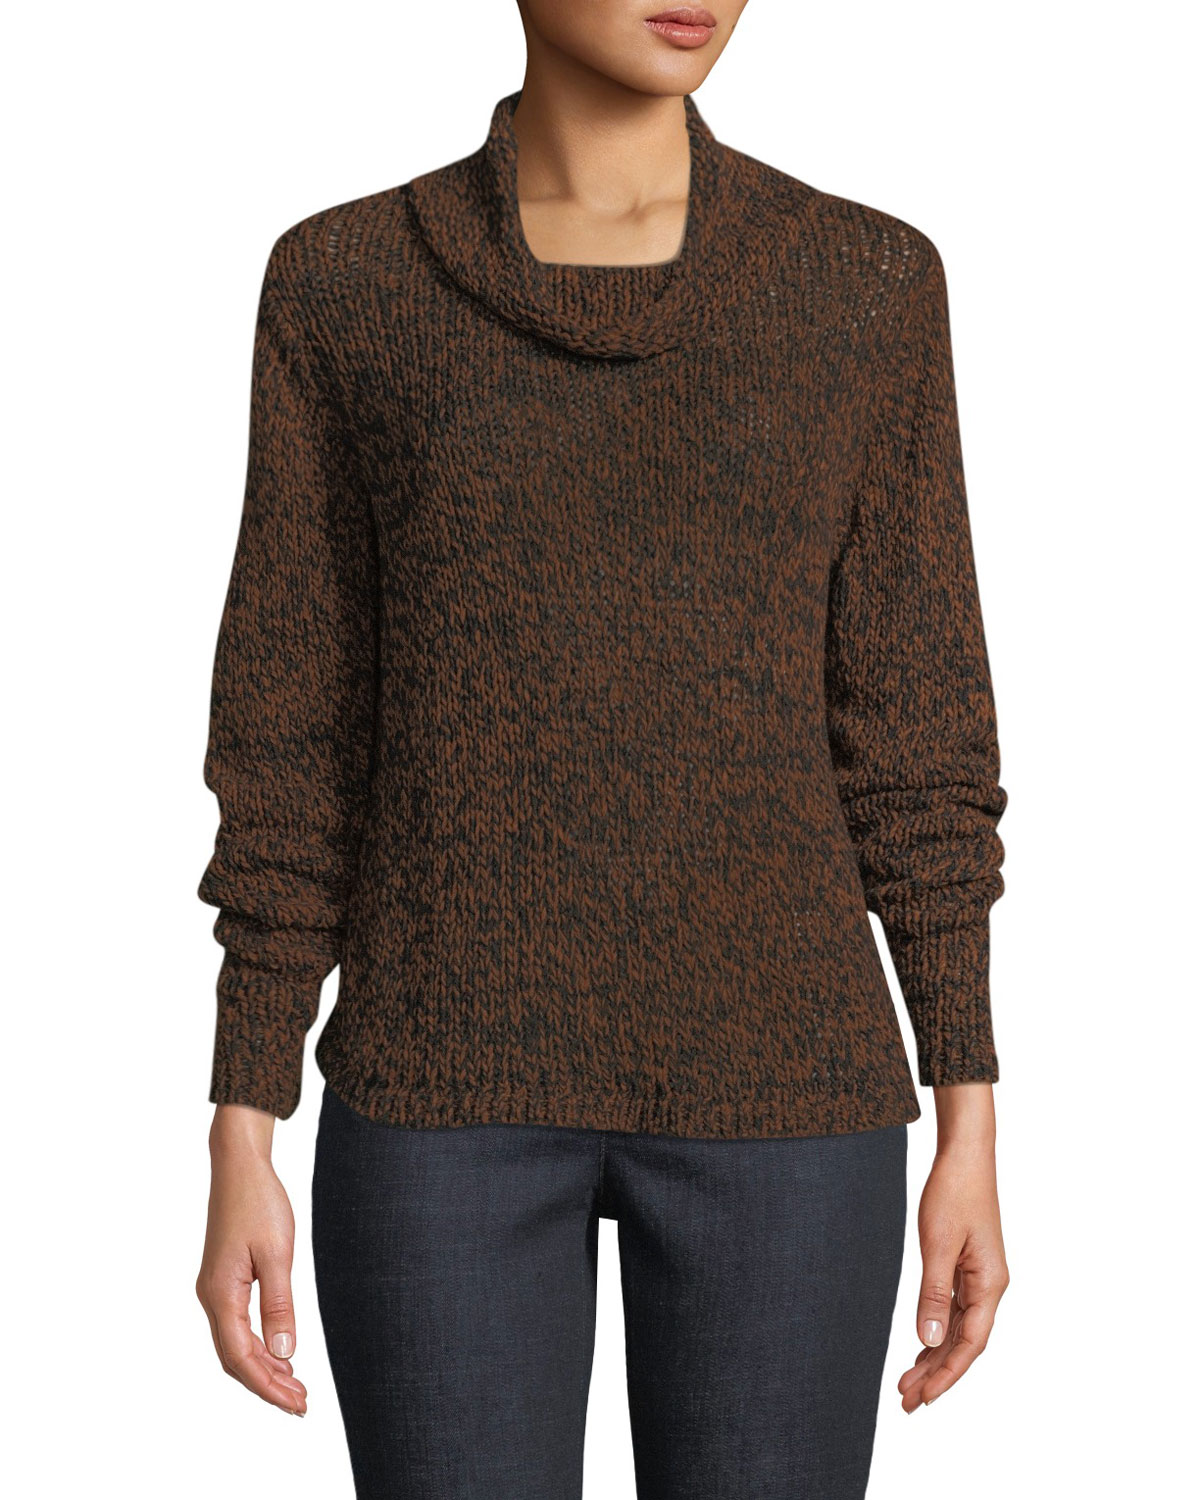 Organic Cotton Blend Long-Sleeve Funnel-Neck Sweater in Nutmeg